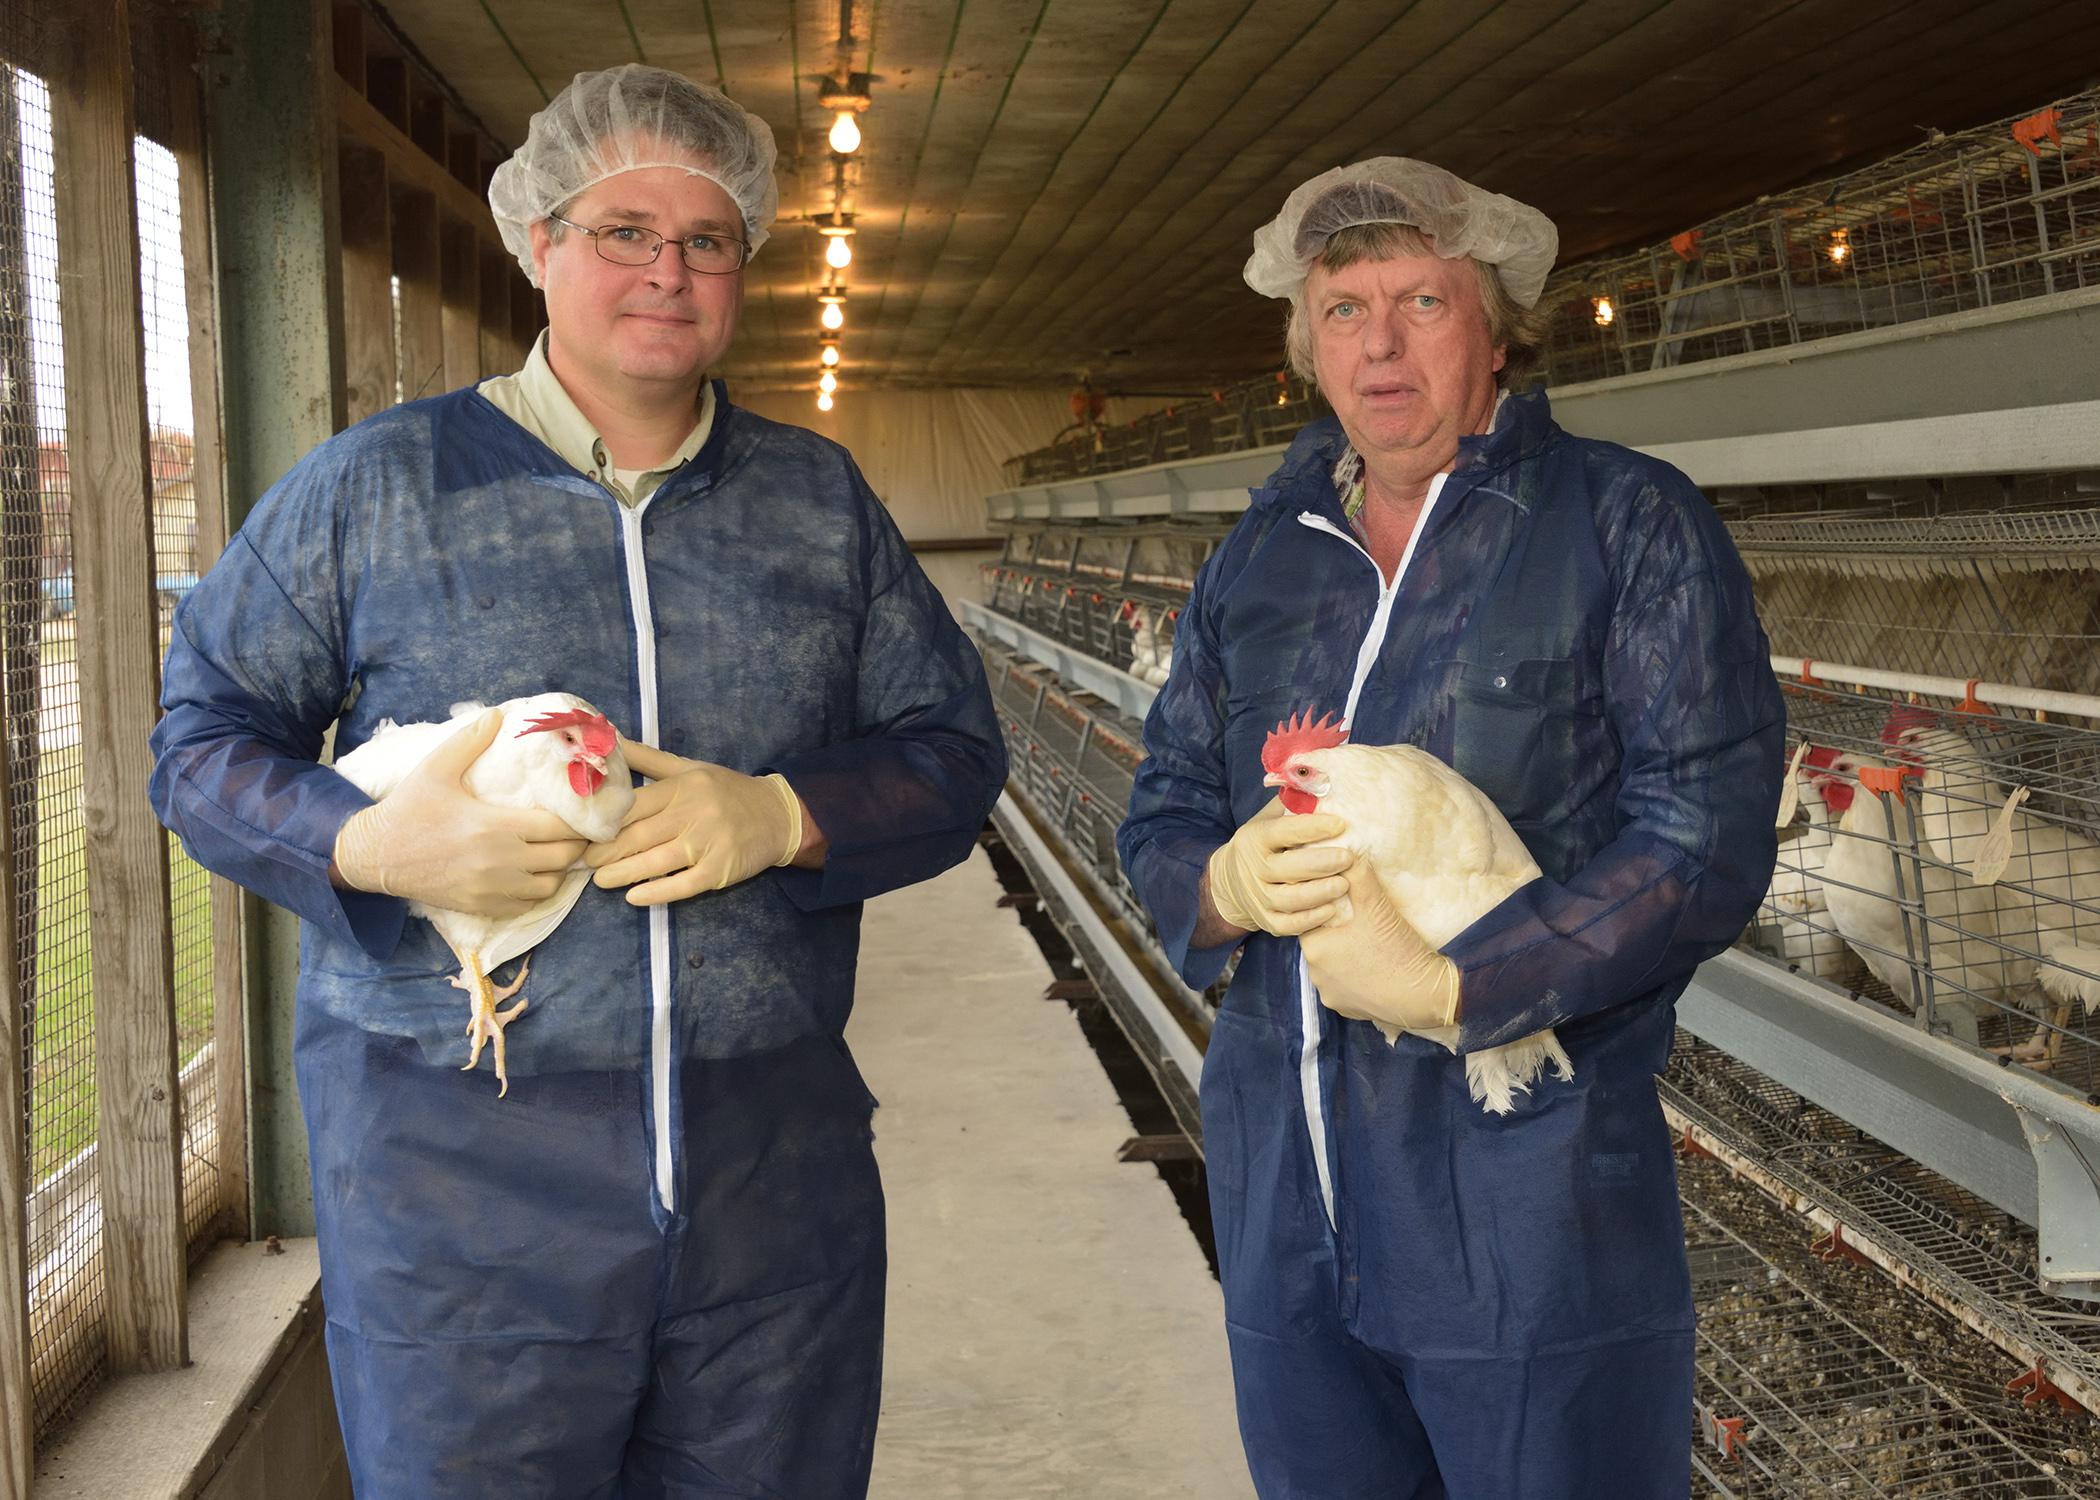 Mississippi State University Extension Service poultry specialists Morgan Farnell (left) and Tom Tabler are working with representatives from the Mississippi Department of Health to improve conditions at the Mississippi Department of Corrections poultry facility in Parchman, Mississippi. (MSU Ag Communication 2014 file photo)